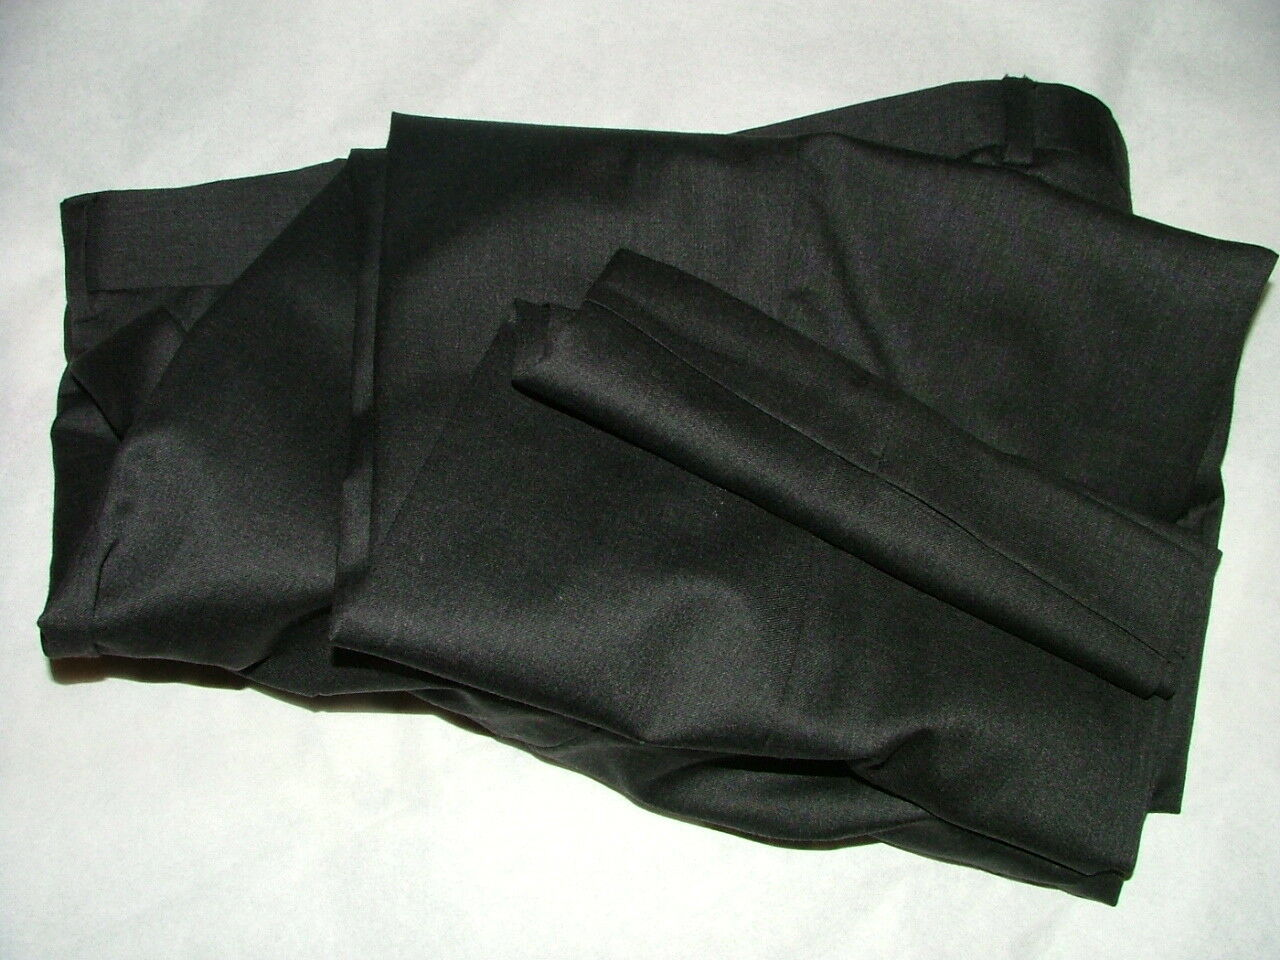 MENS PAZONI DRESS PANTS SIZE 40 X 27 100% WOOL MADE IN ITALY CHARCOAL SOLID